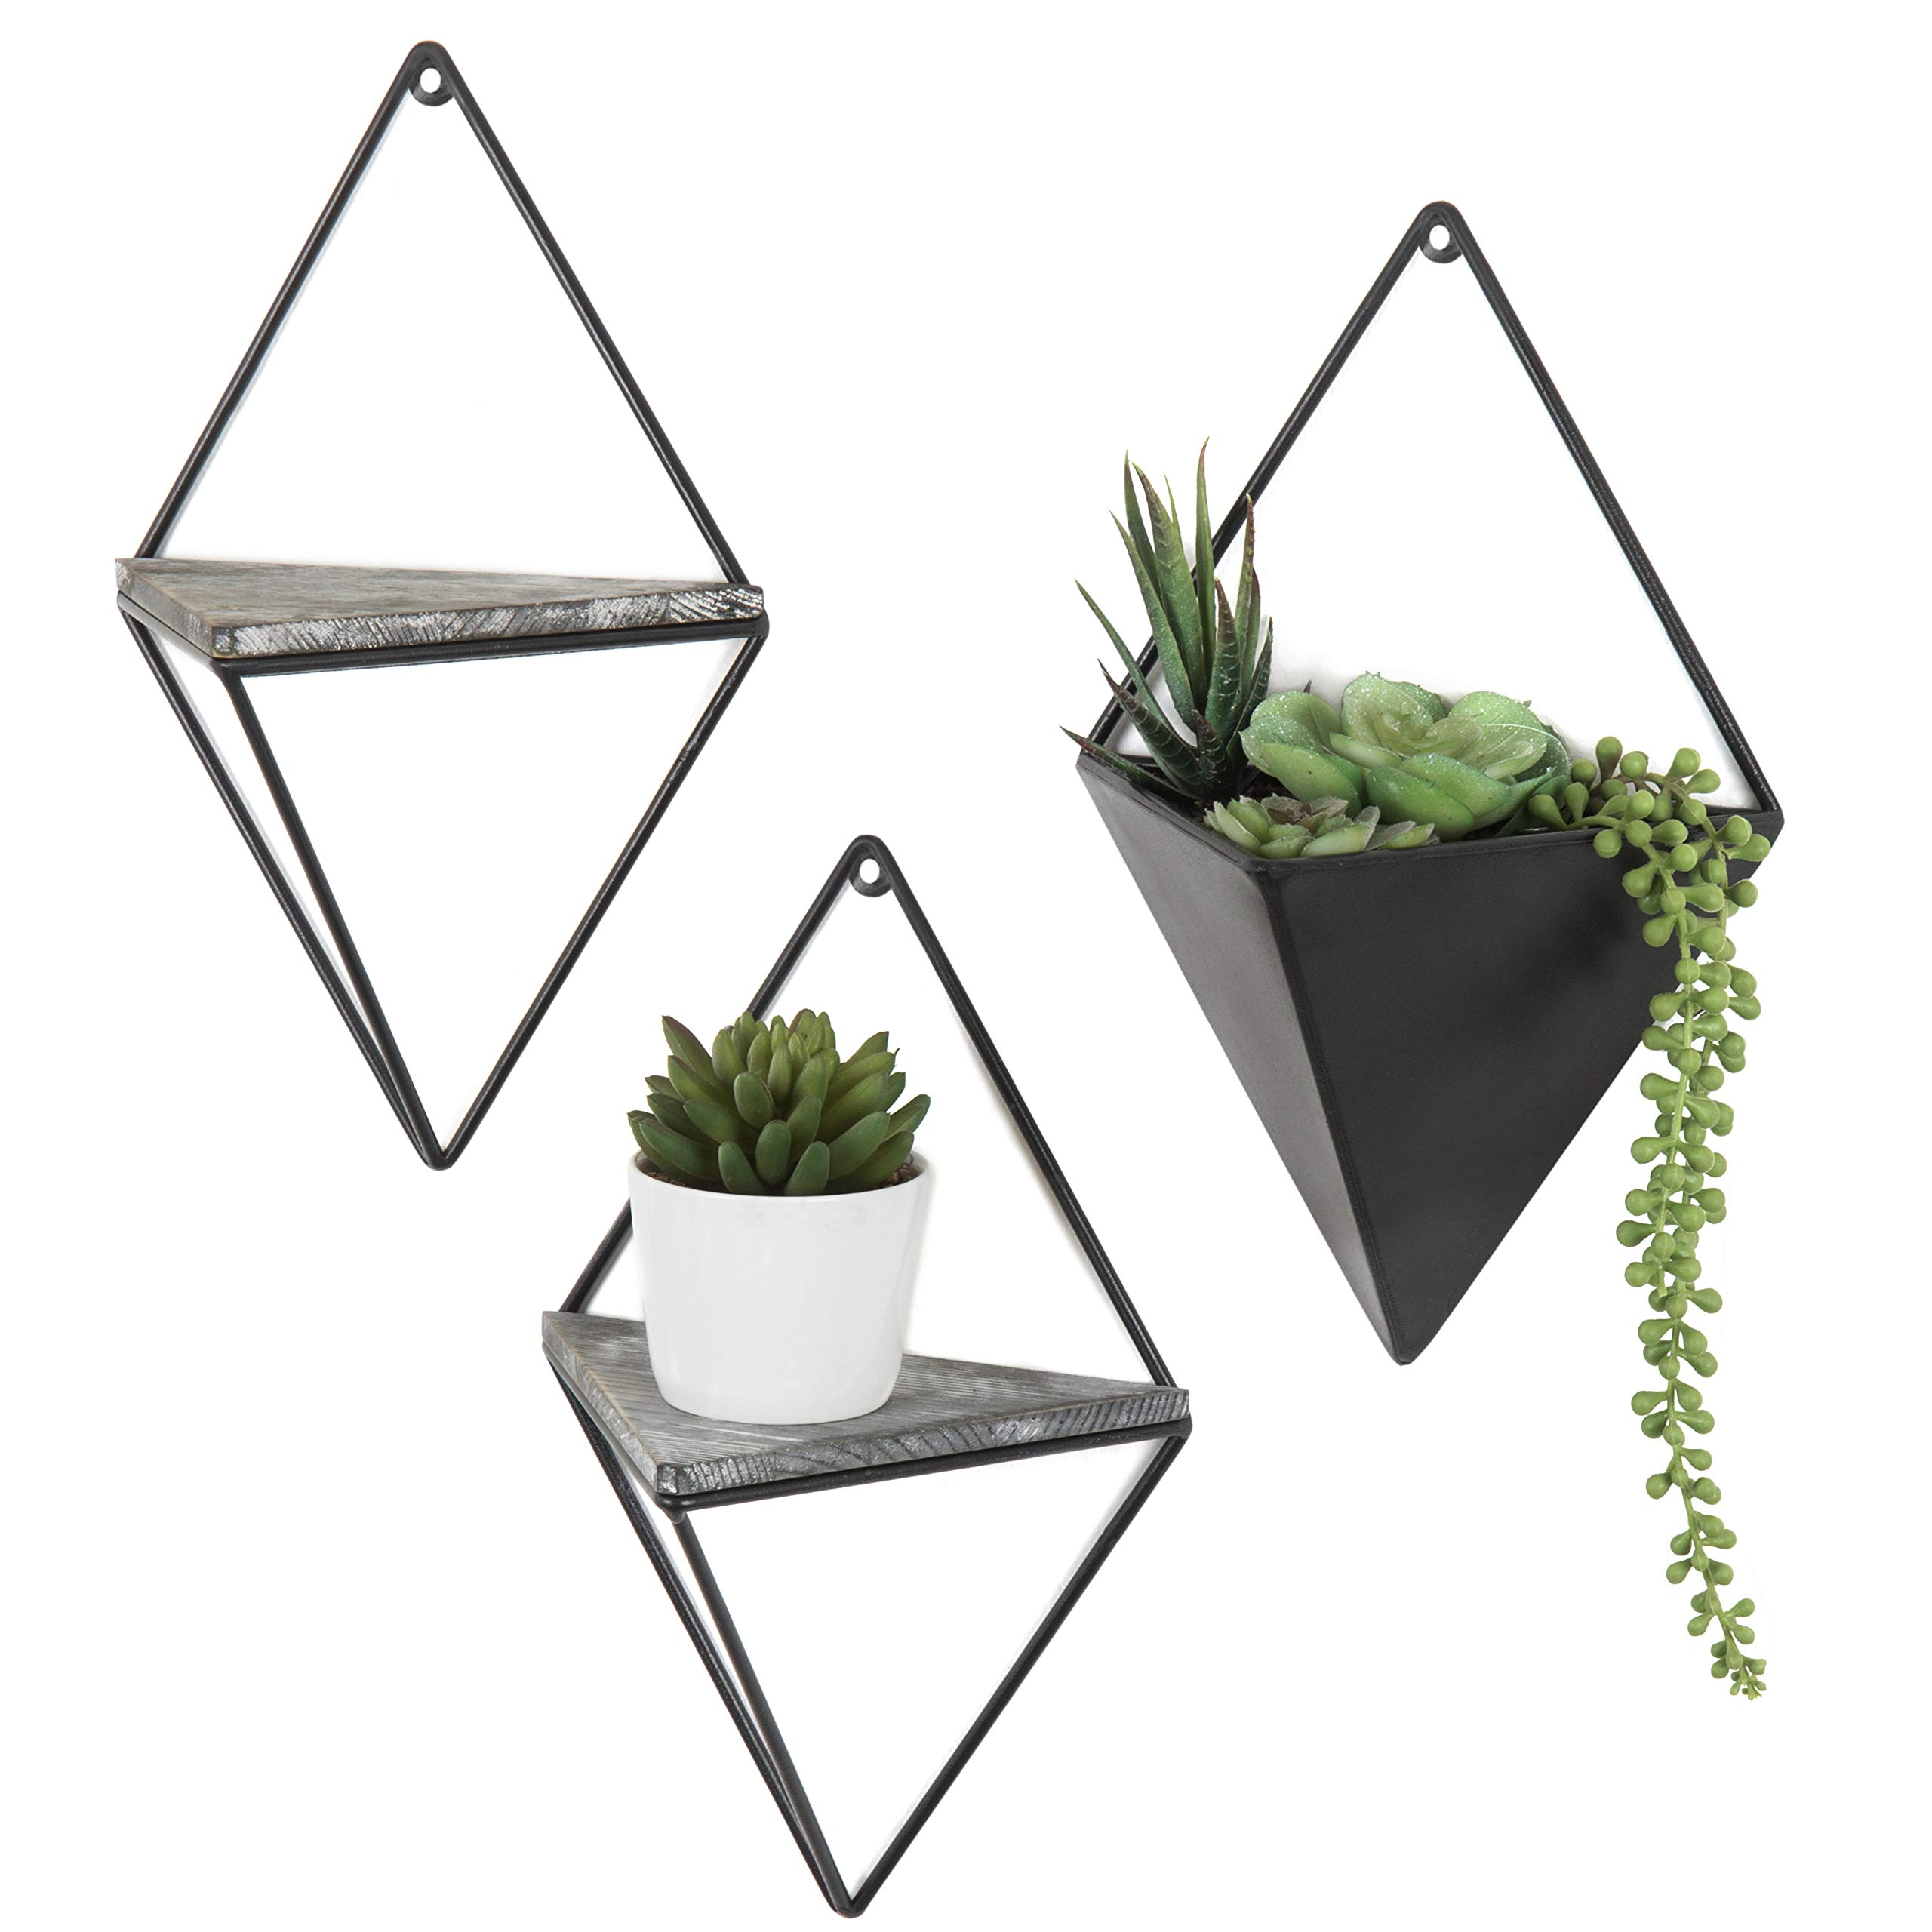 MyGift Diamond-Shaped Wall-Mounted Metal 2 Accent Wall Shelves & Sconce Planter, 3-Piece Set by MyGift